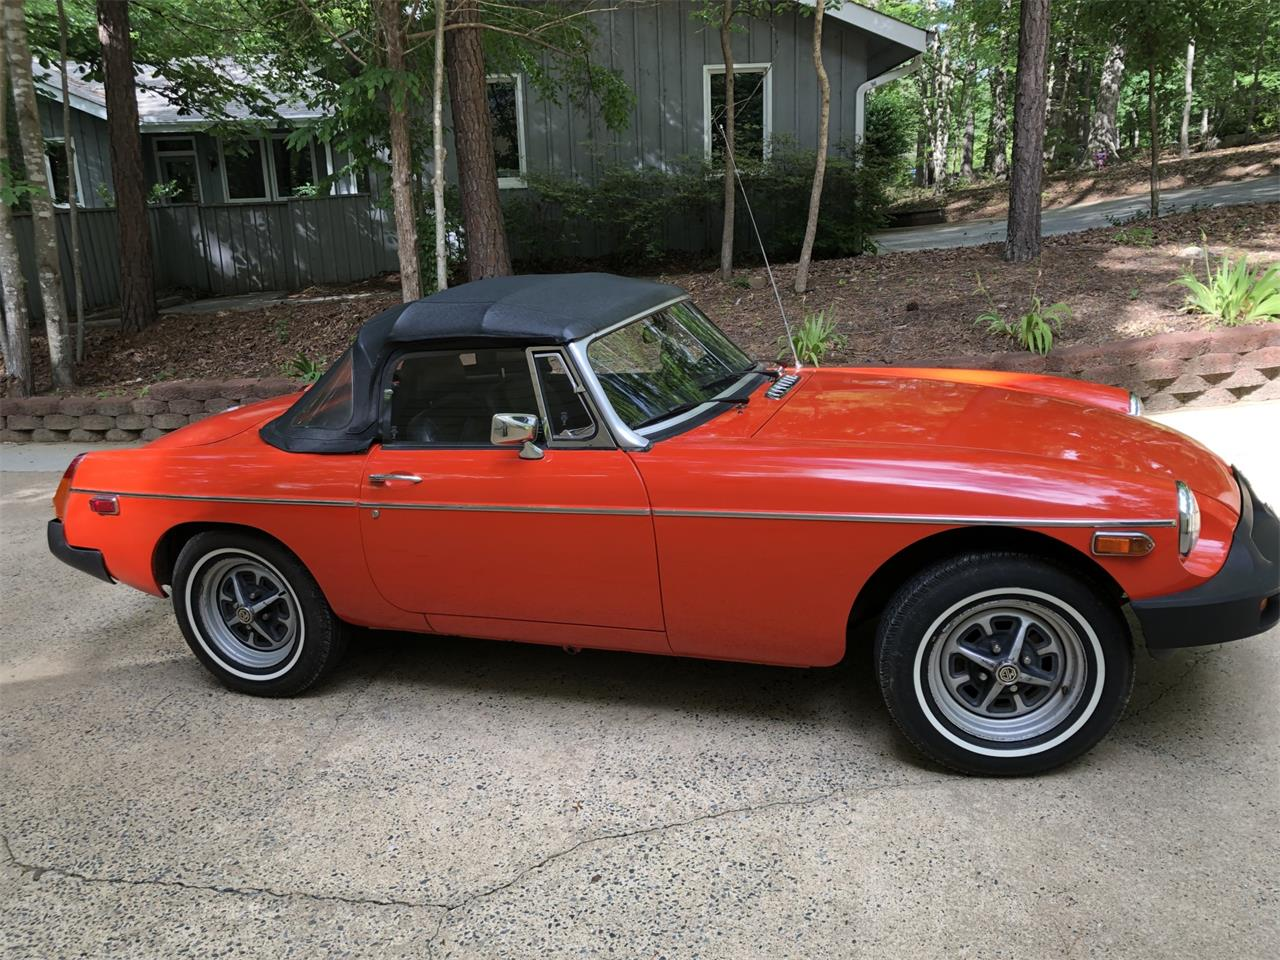 Large Picture of 1979 MG MGB Auction Vehicle Offered by Bring A Trailer - Q6FU